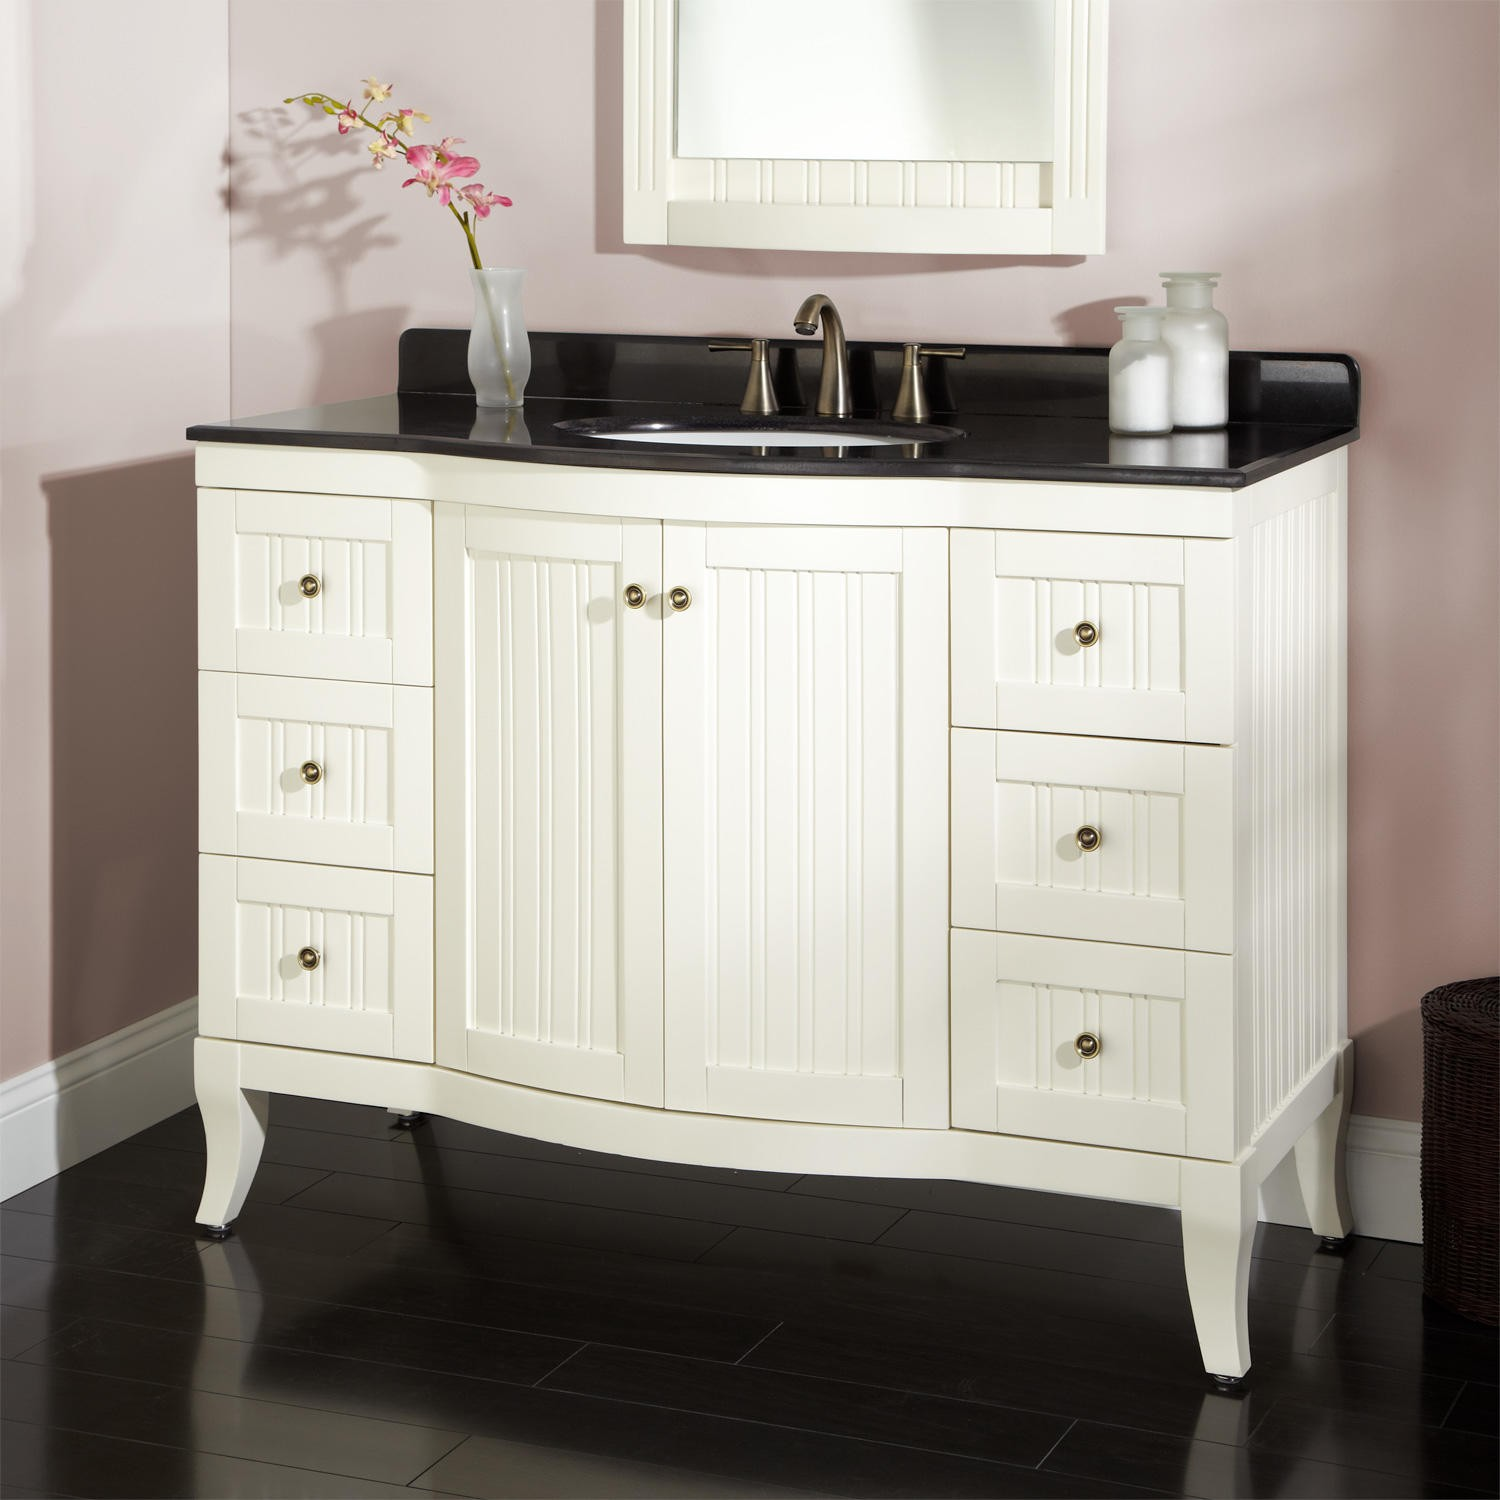 White Bathroom Vanity Ideas For Your Inspiration With Black Top